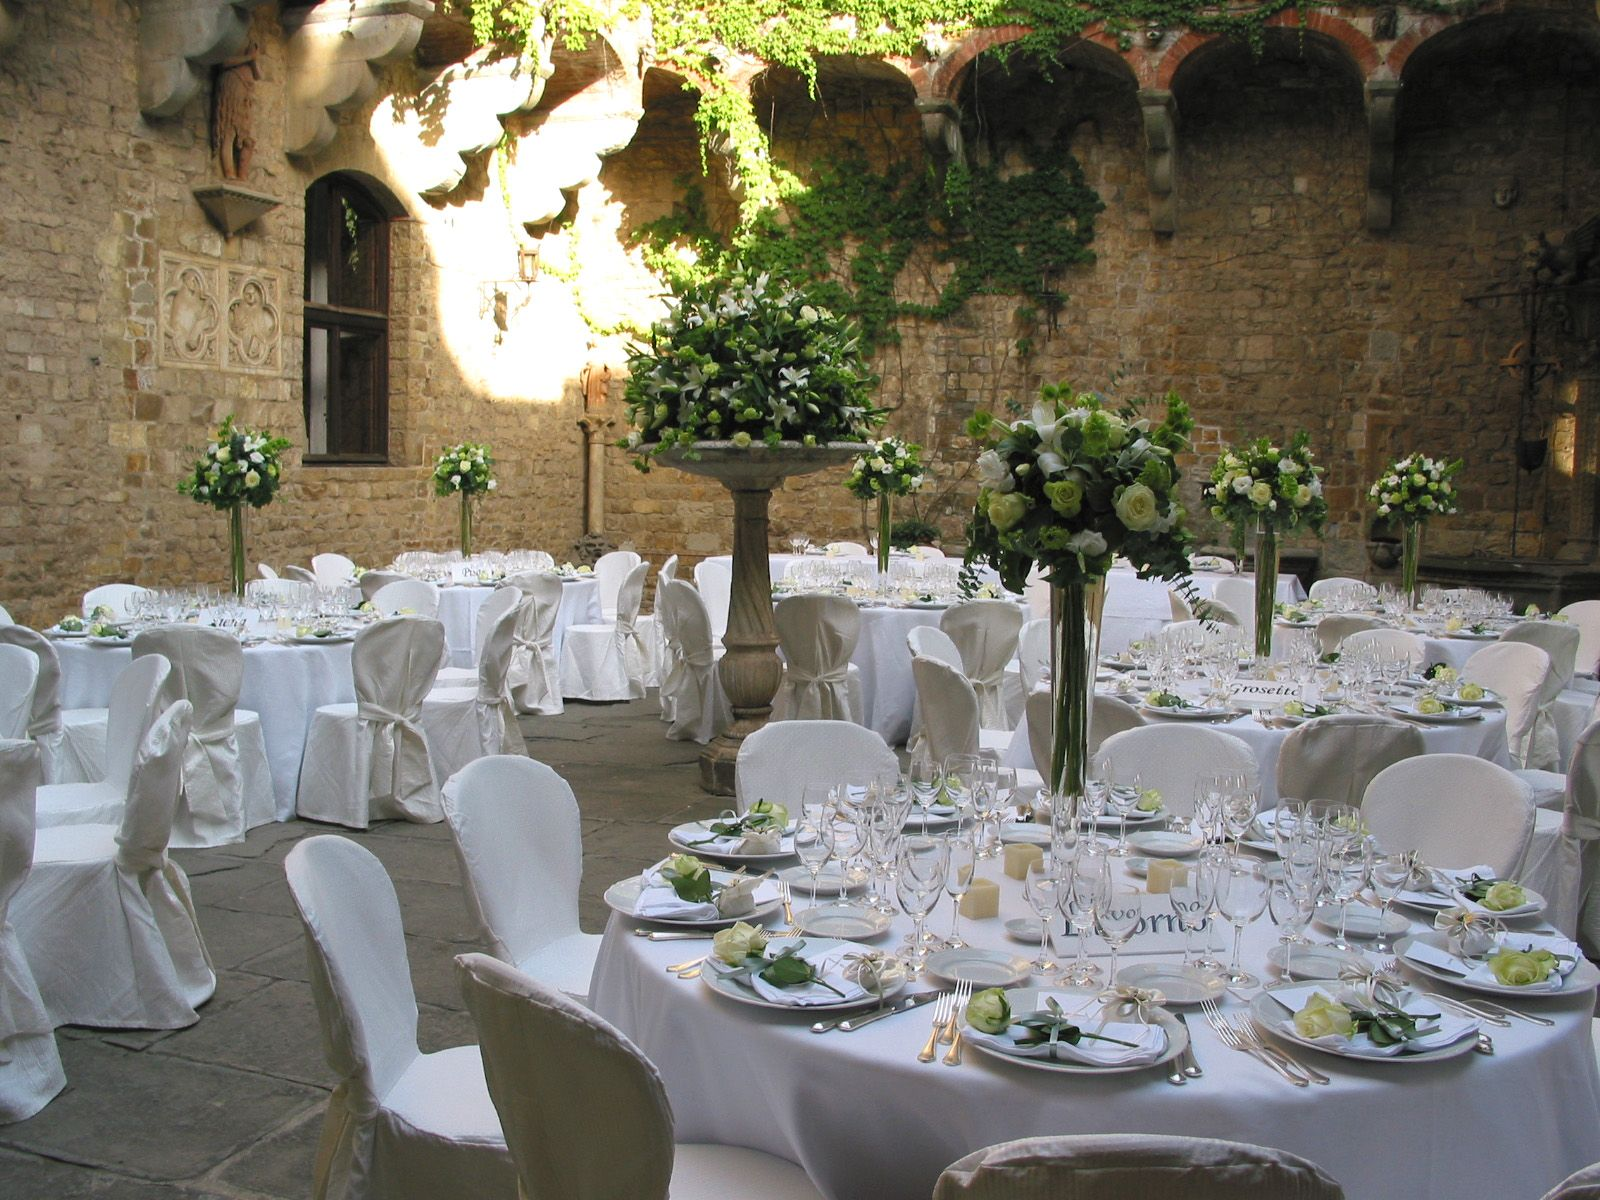 Tall glass vases with white flowers and greenery. Event Planner : Blanc Ricevimenti.